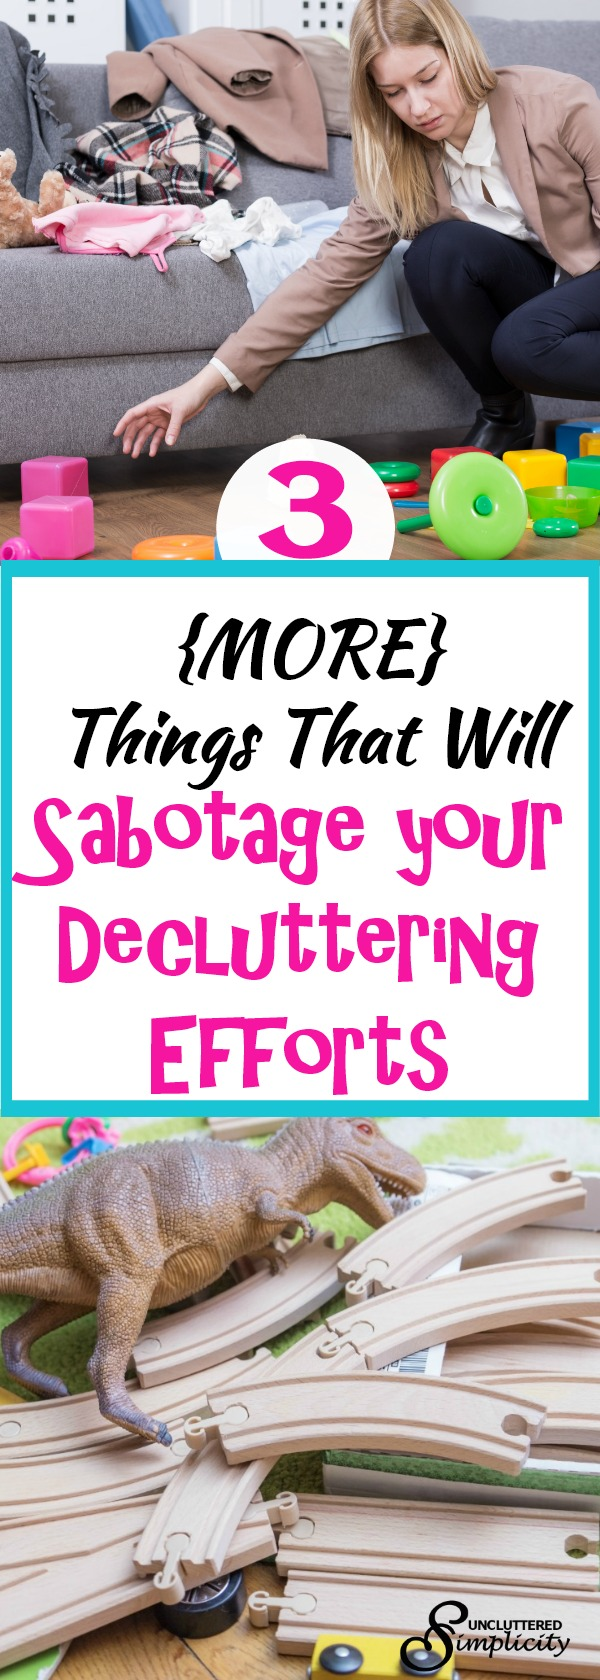 decluttering efforts   things that get in the way of decluttering   how to declutter your home